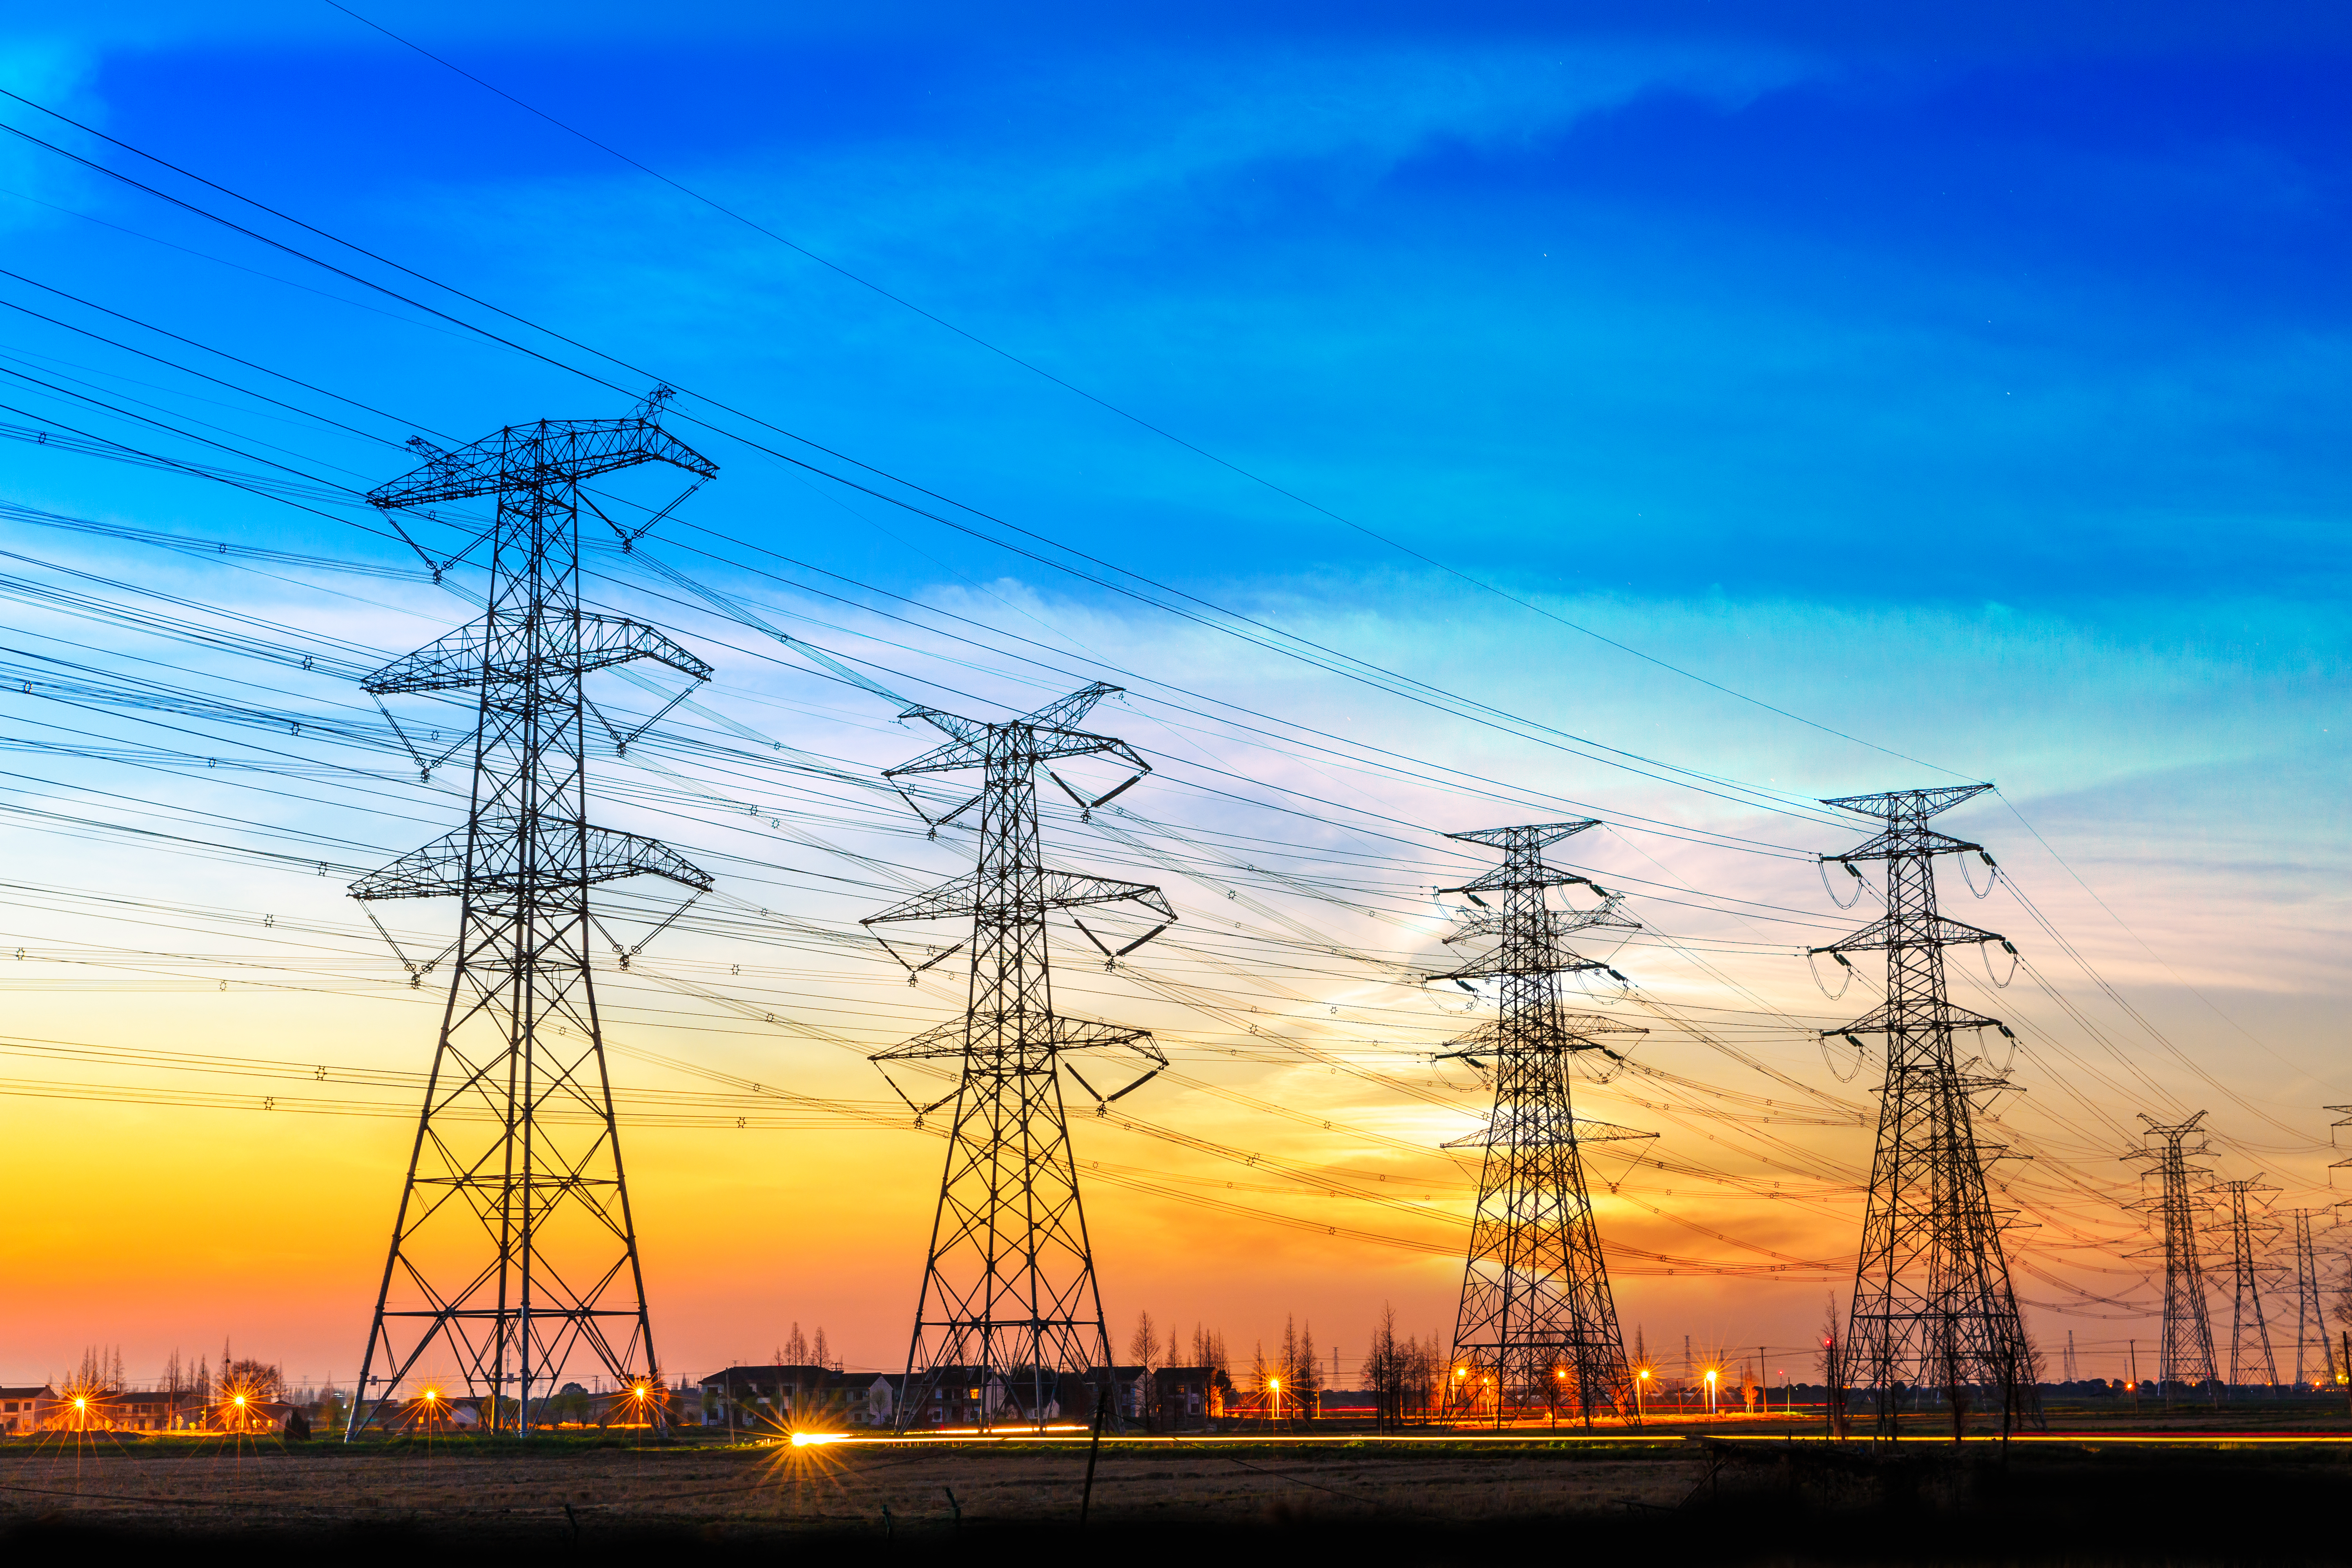 Buzz Kill: Here's Why High-Voltage Power Lines Make Noise